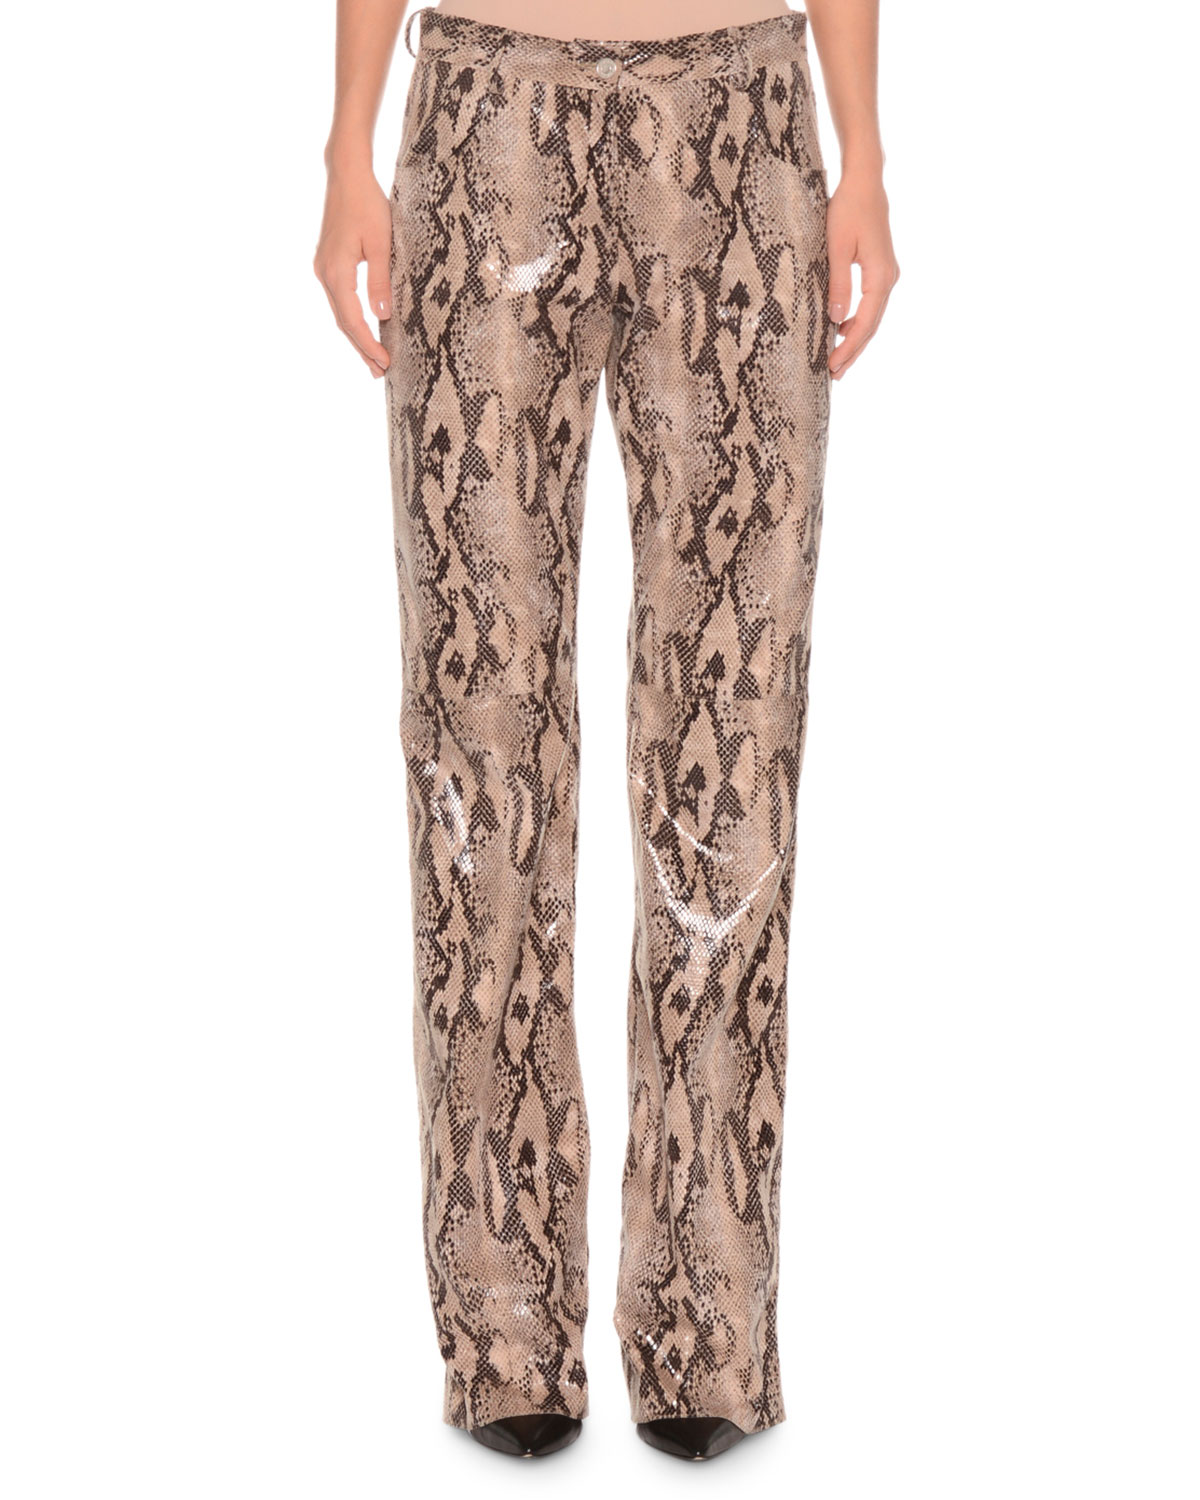 Exact Product: Kendall Jenner Grey Snakeskin Trousers 2019, Brand: MSGM, Available on: neimanmarcus.com